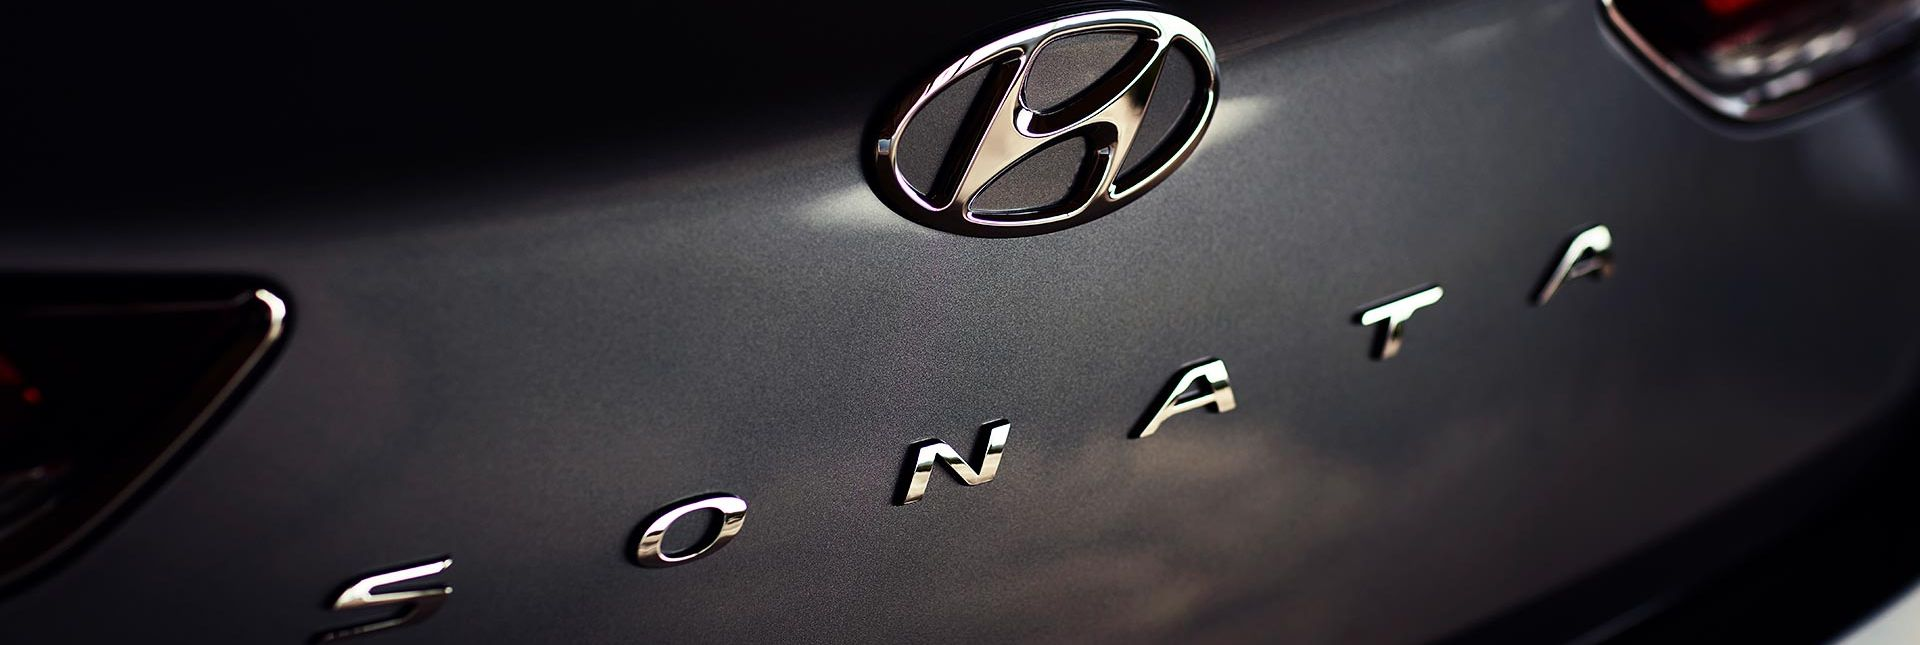 Exterior Badges of the 2019 Sonata